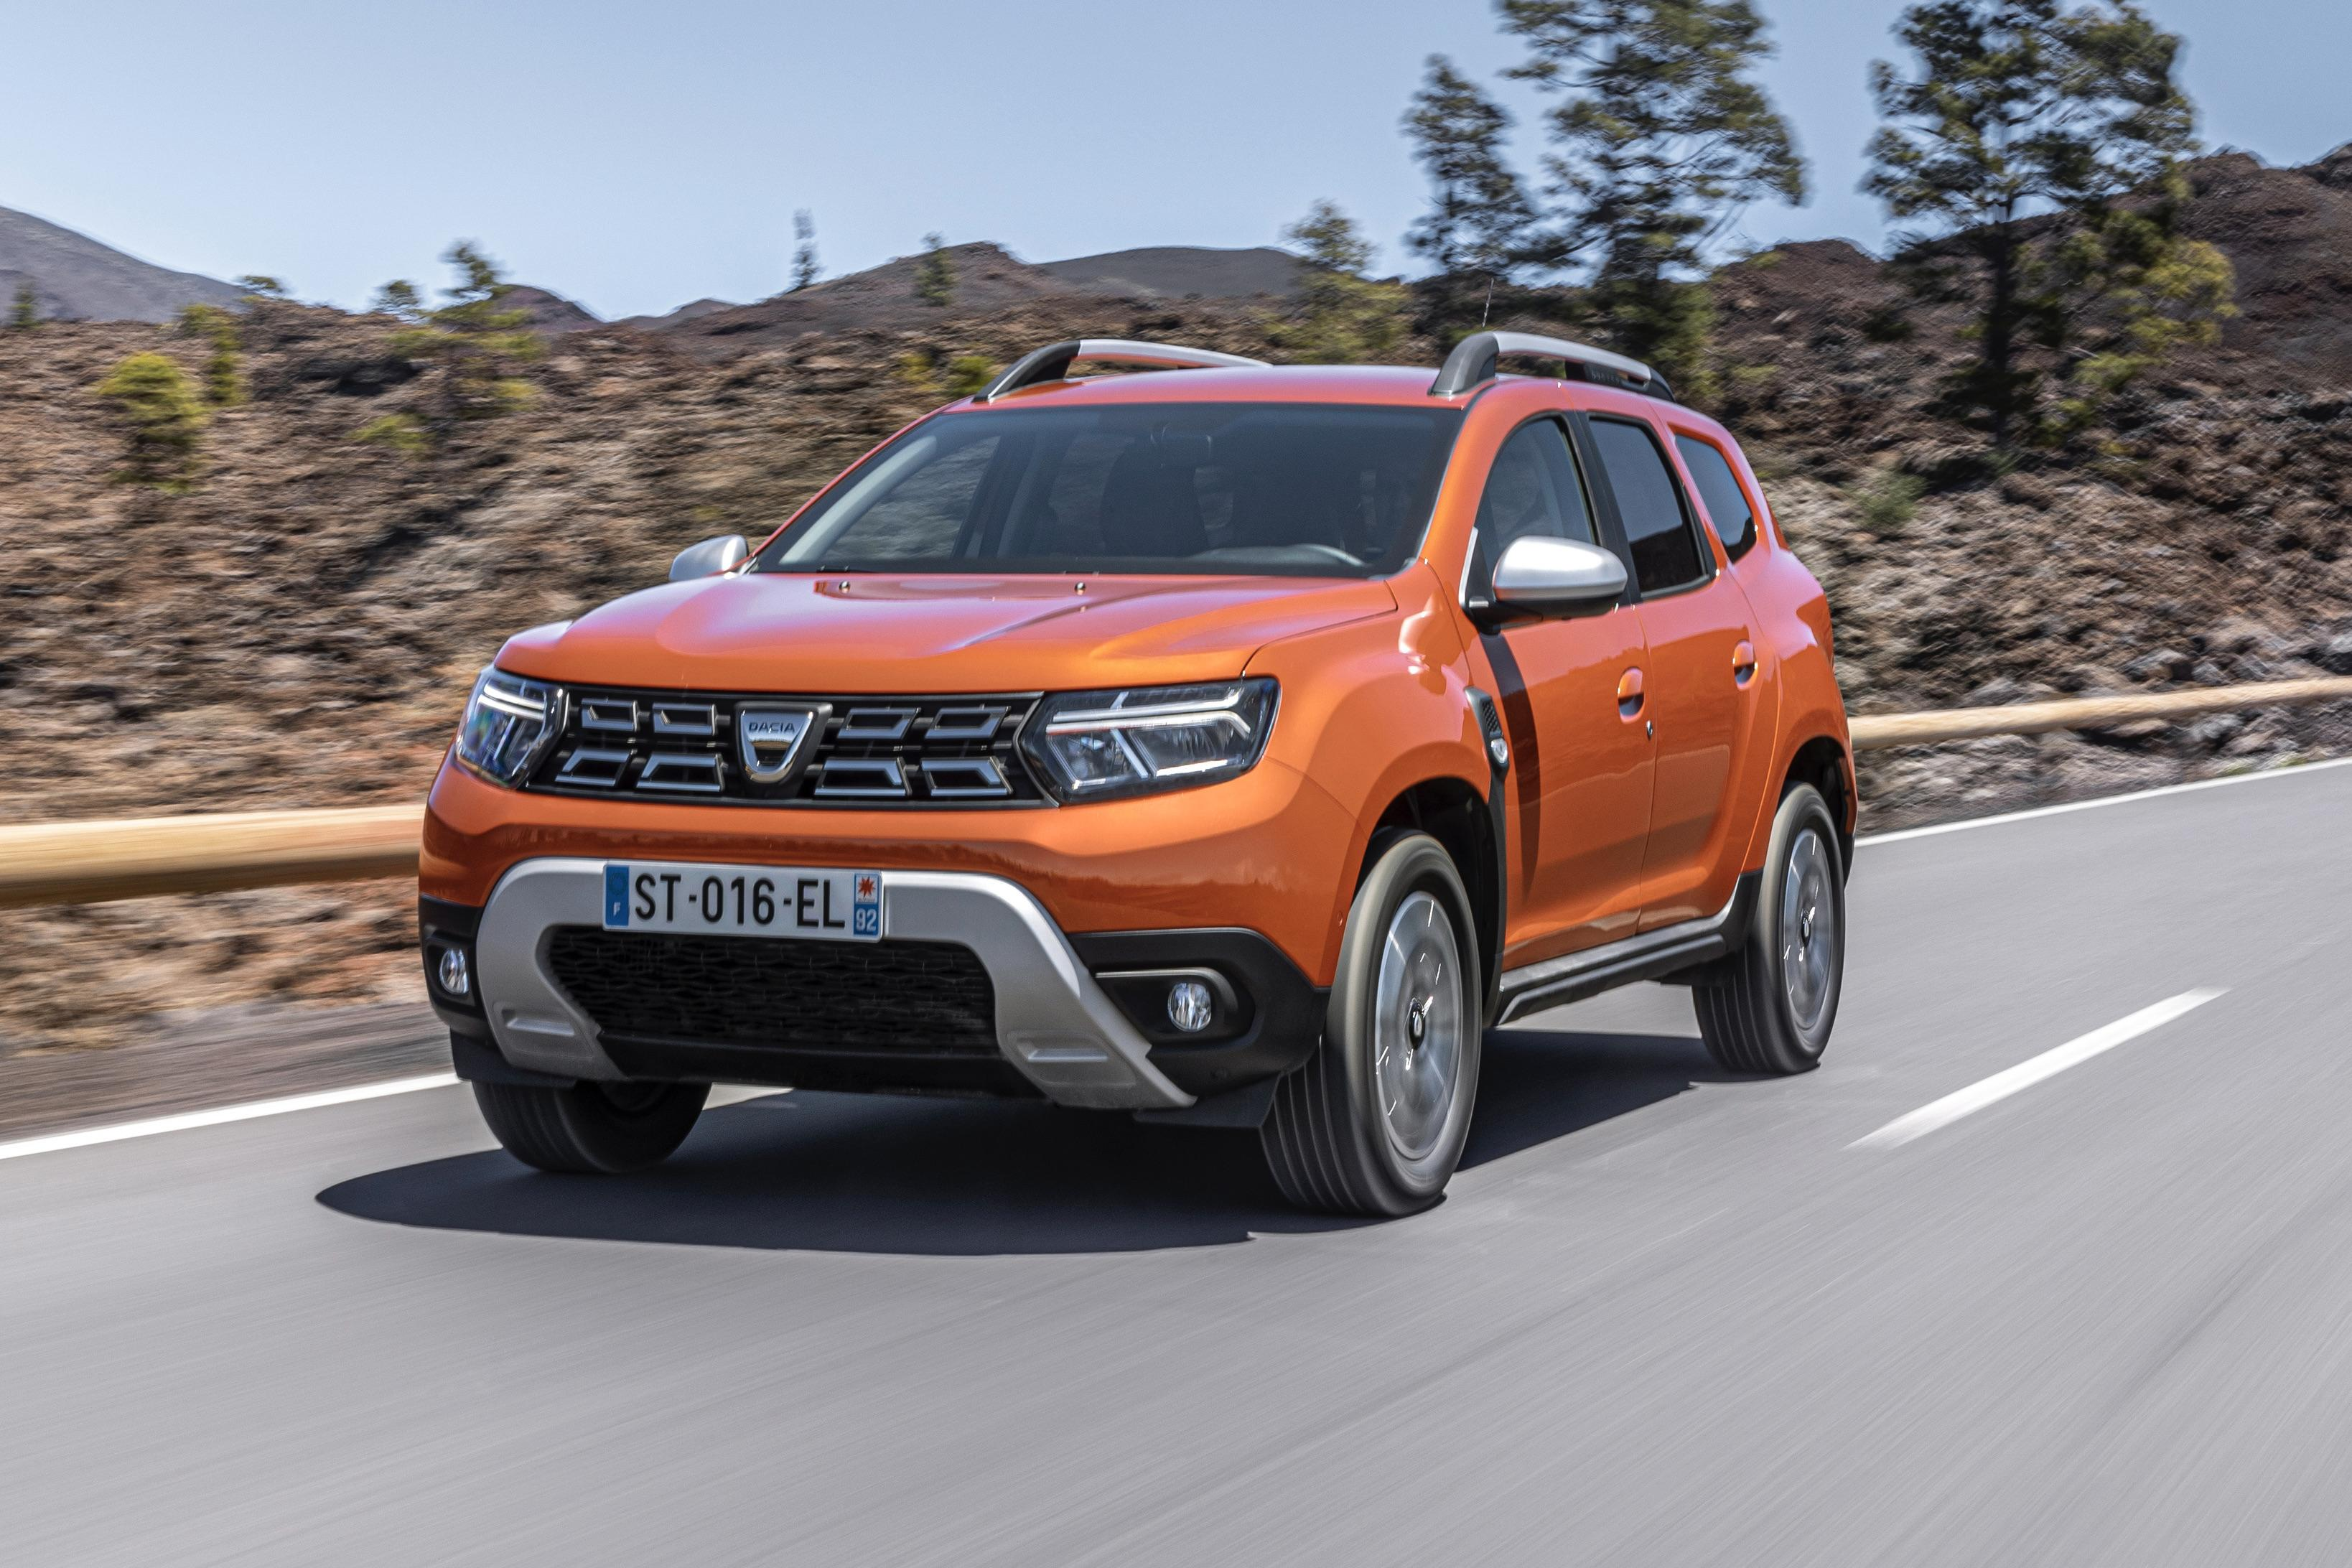 Dacia Duster update revealed ahead of likely Australian launch